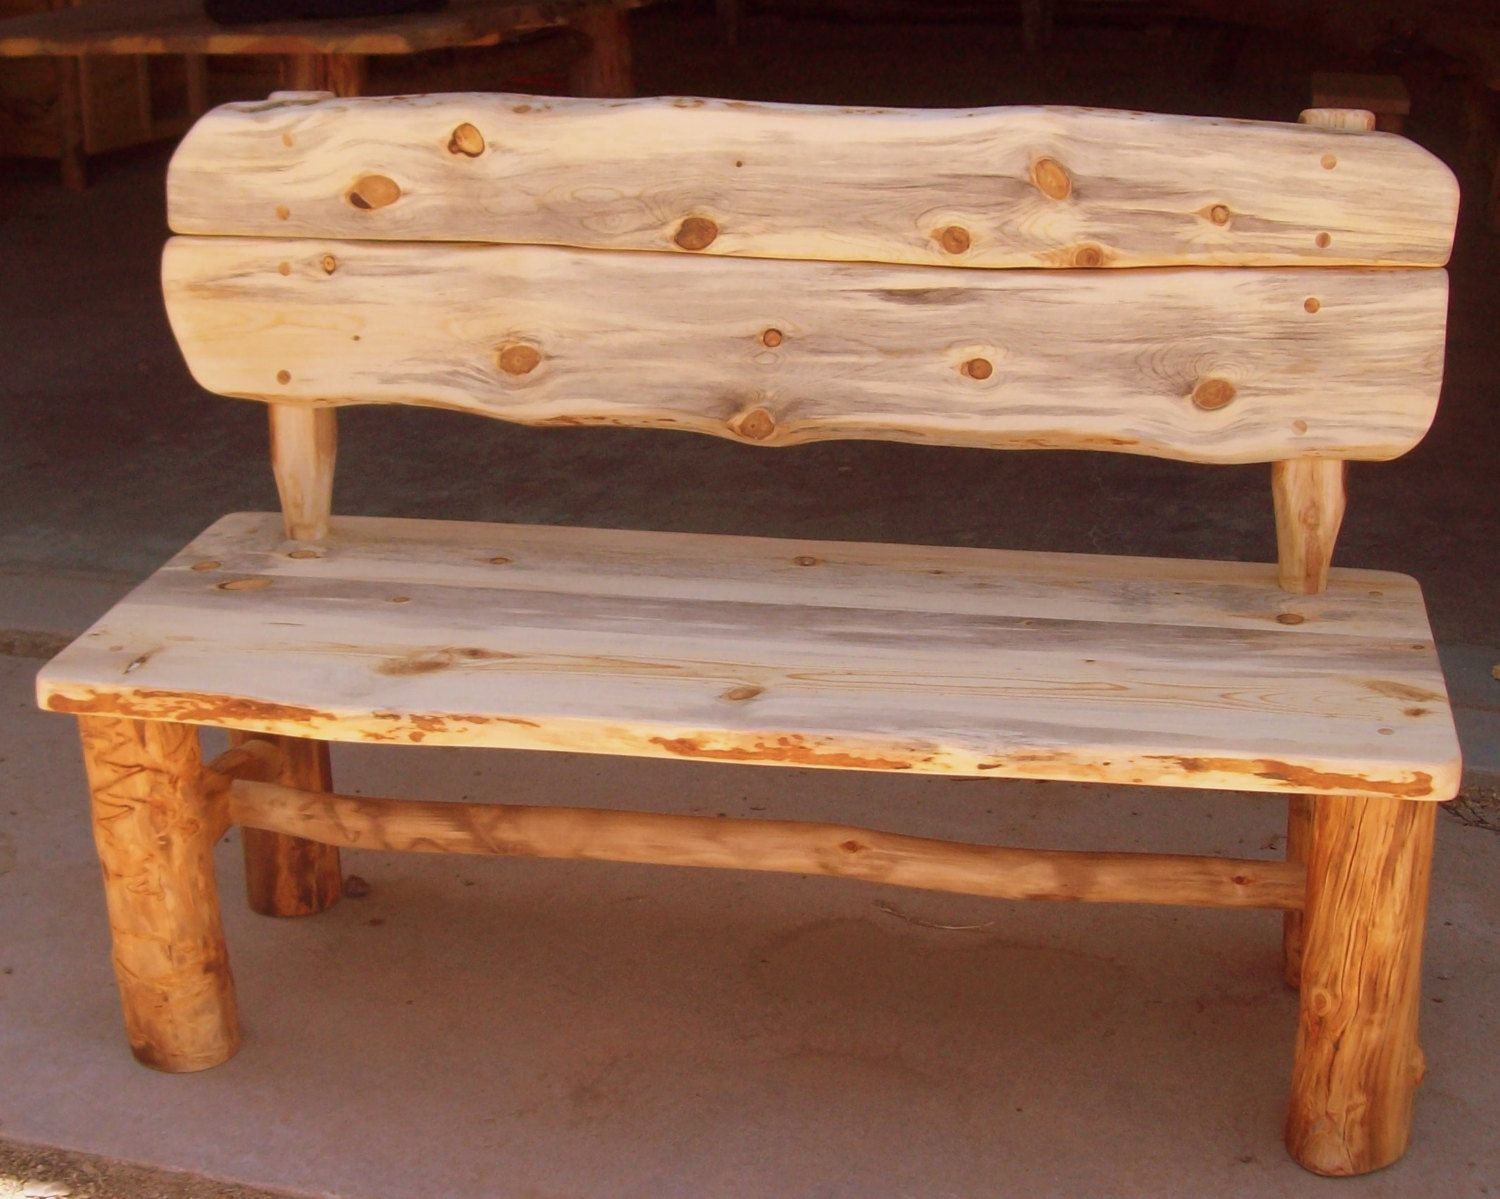 Wedding Guest Book Alternative Rustic Wood Bench With Backs